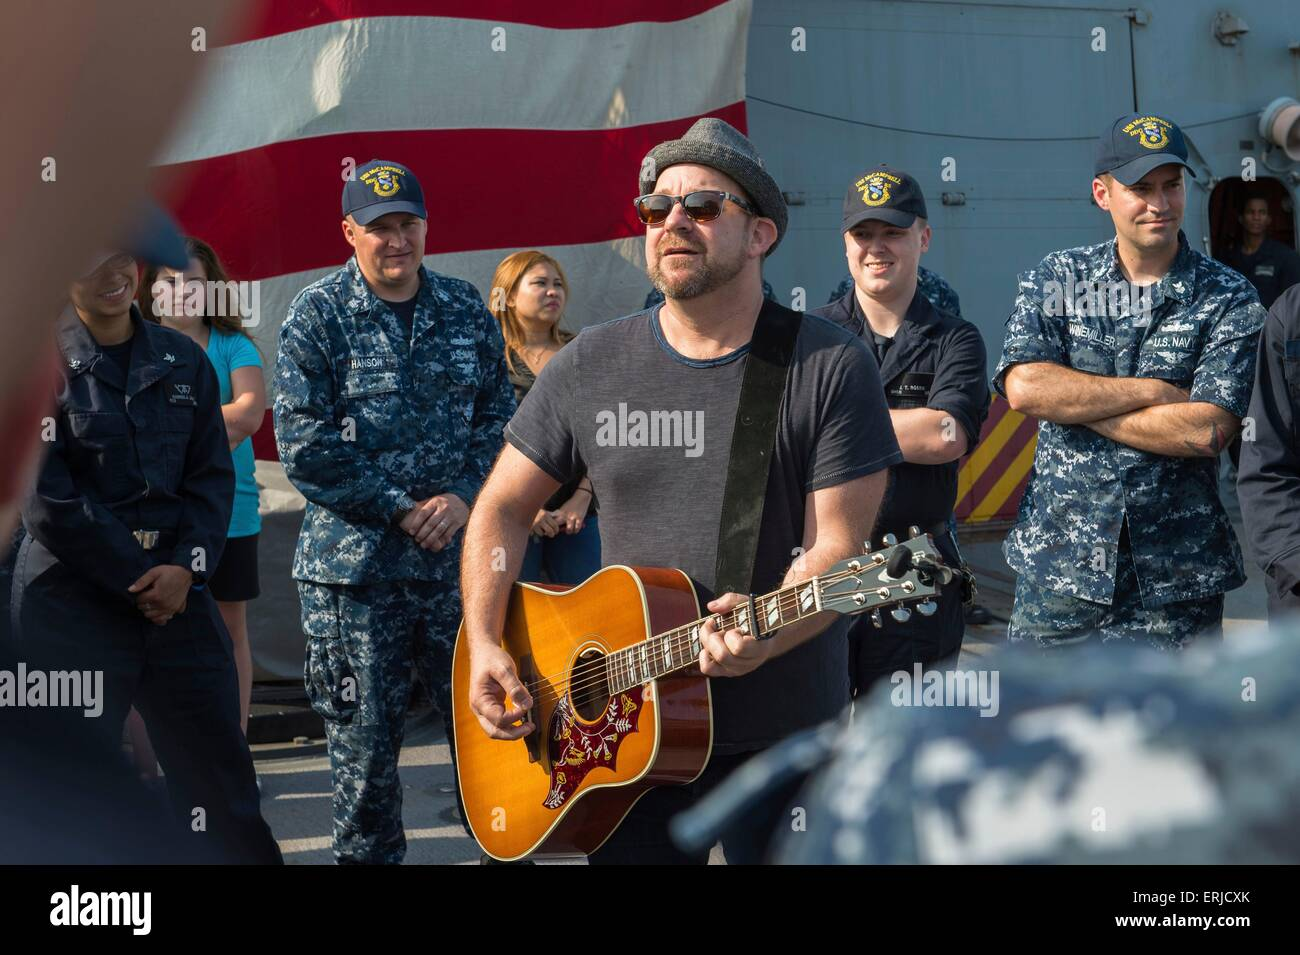 Two-time Grammy award-winner and founding member of the band Sugarland, singer Kristian Bush, performs for US sailors - Stock Image